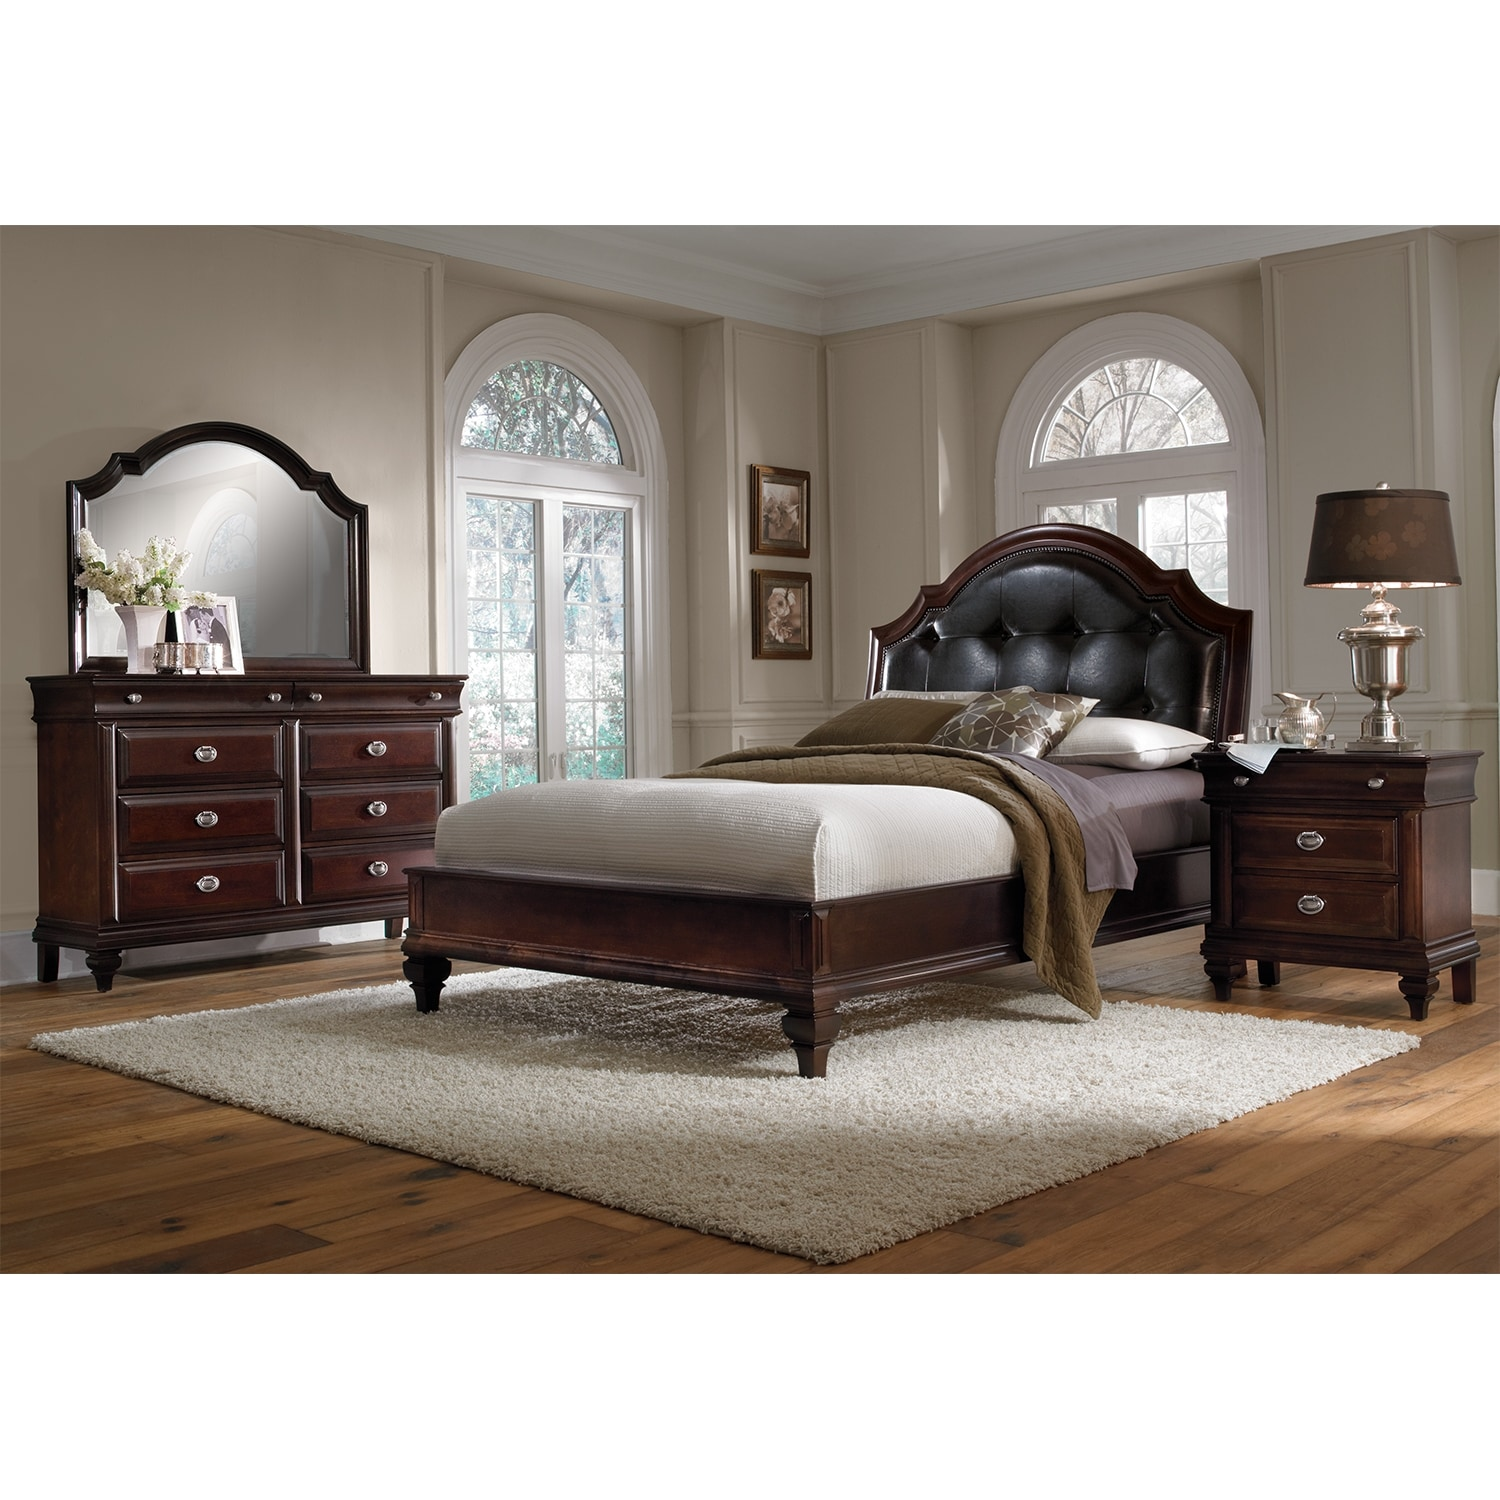 Bedroom Furniture - Manhattan 6-Piece Upholstered Bedroom Set with Nightstand, Dresser and Mirror